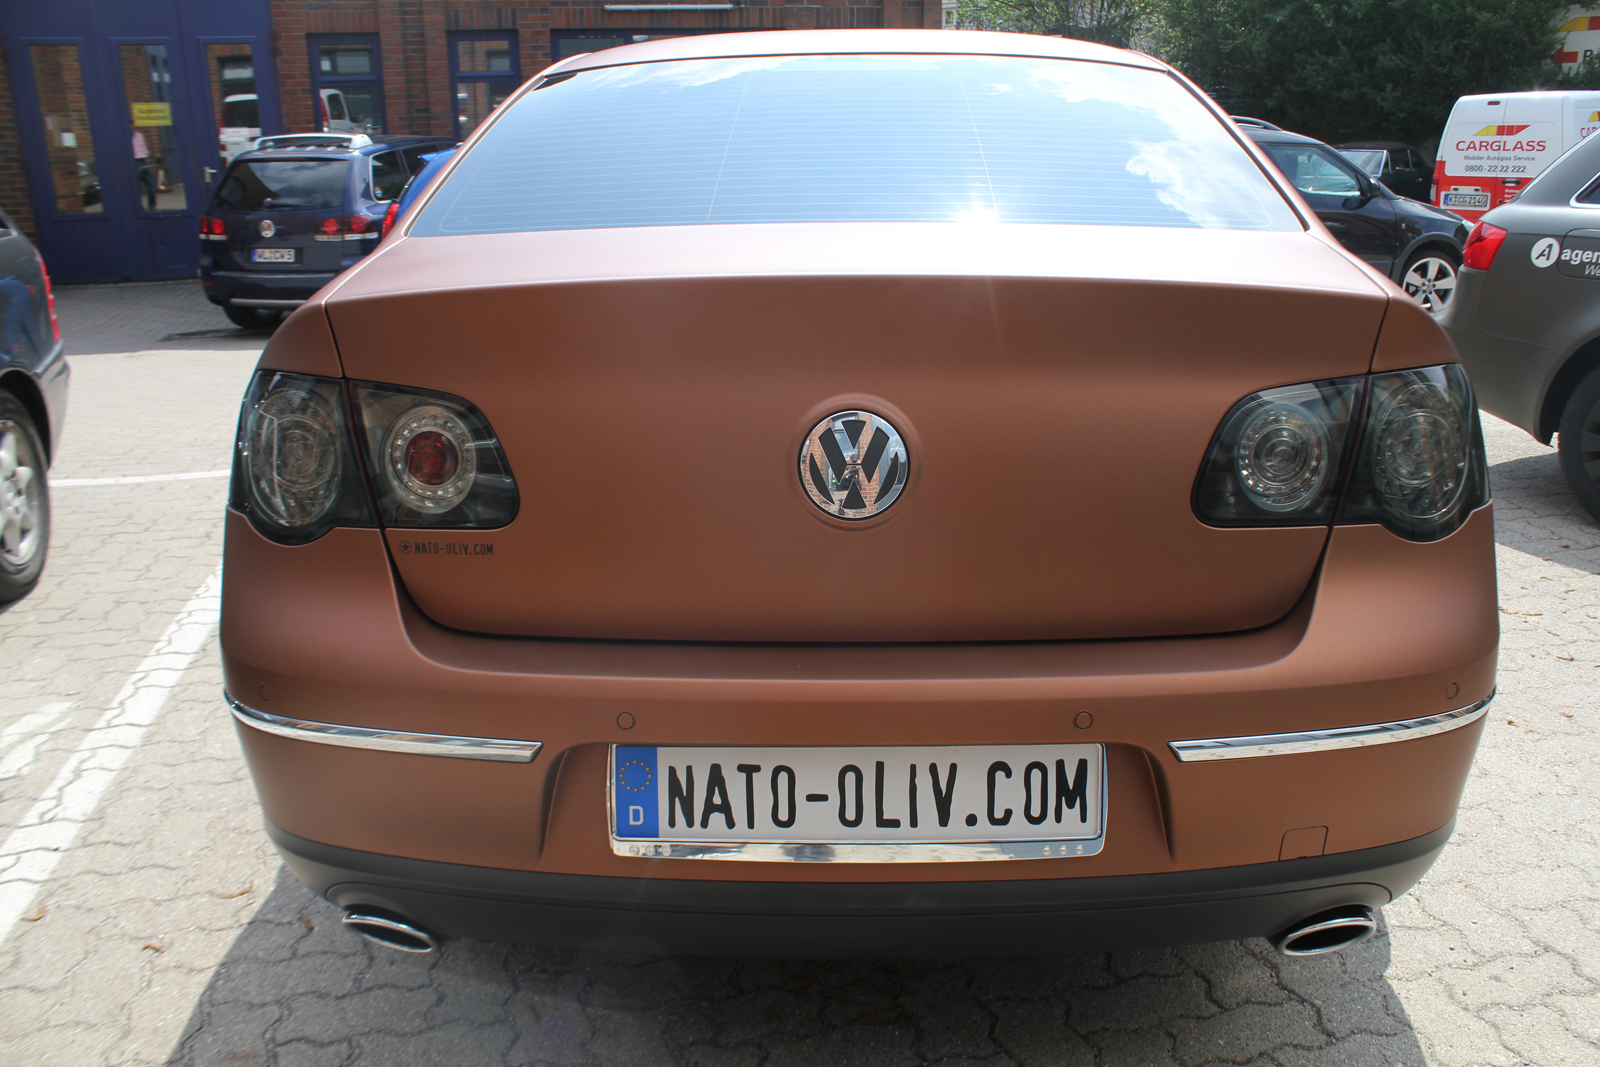 VW_Passat_Folierung_Bronze_matt_metallic_13